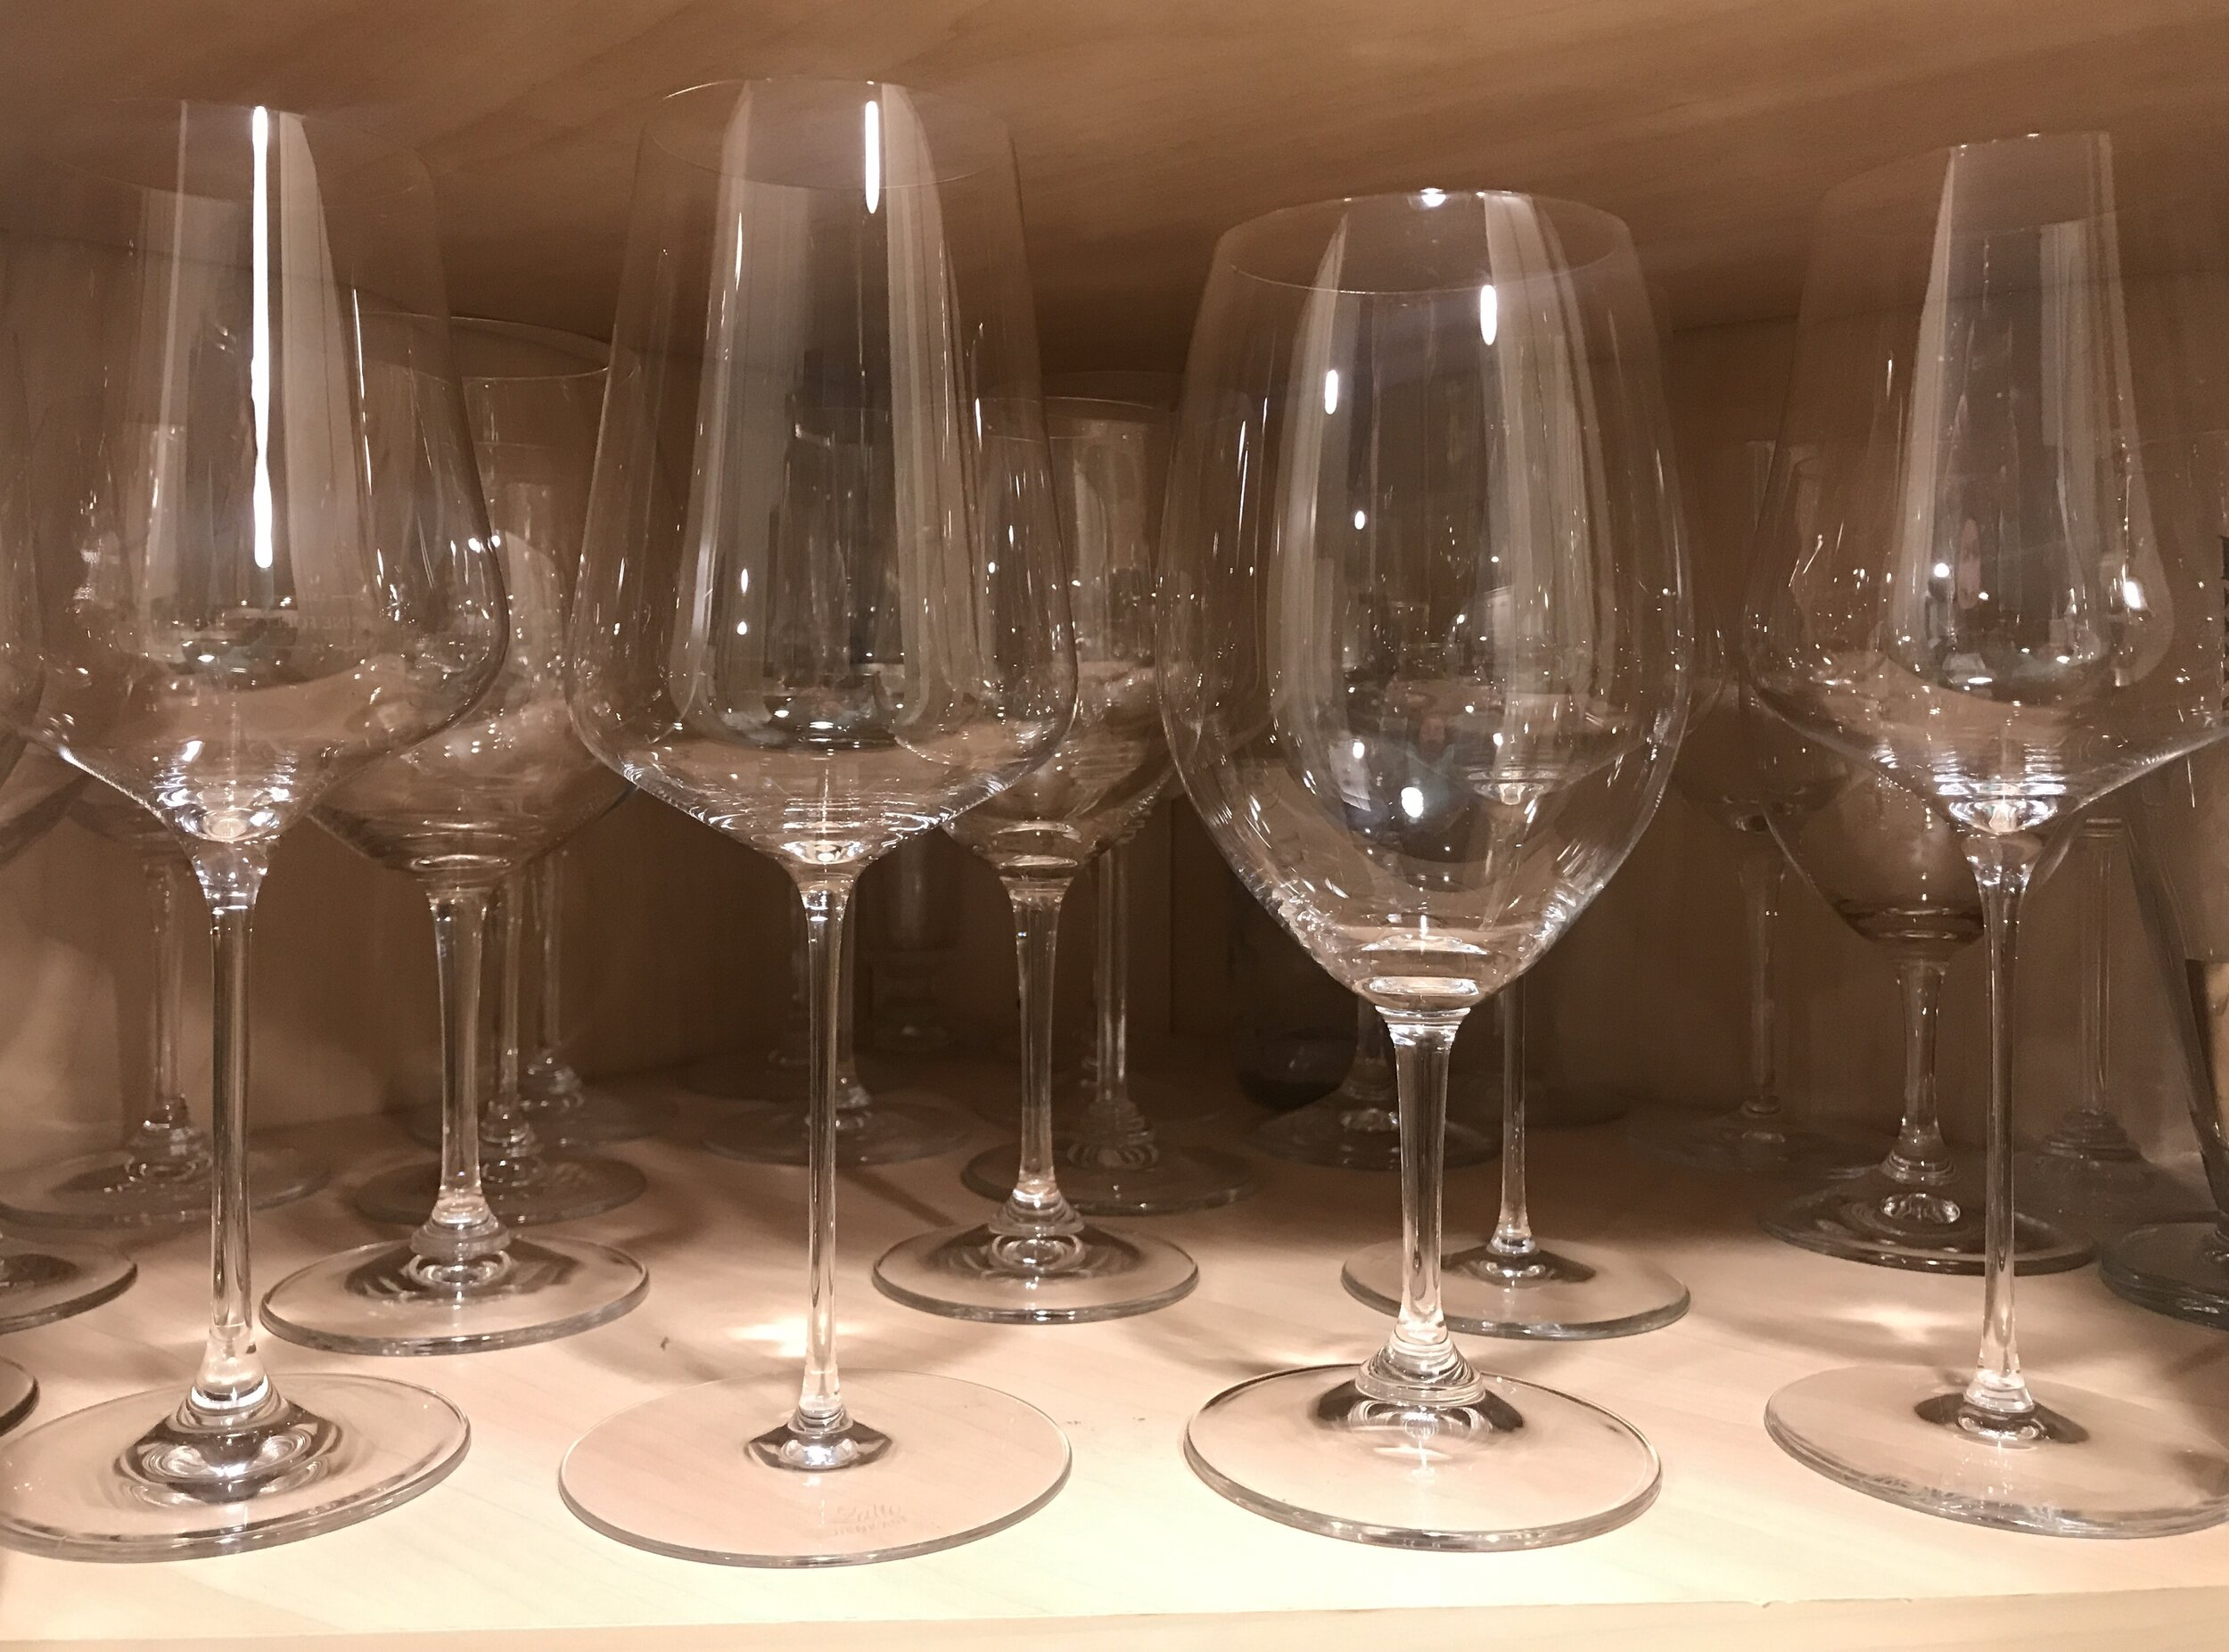 2 NEW COOPER /& THIEF CELLAR MASTERS ETCHED WINE GLASSES 10 OZ